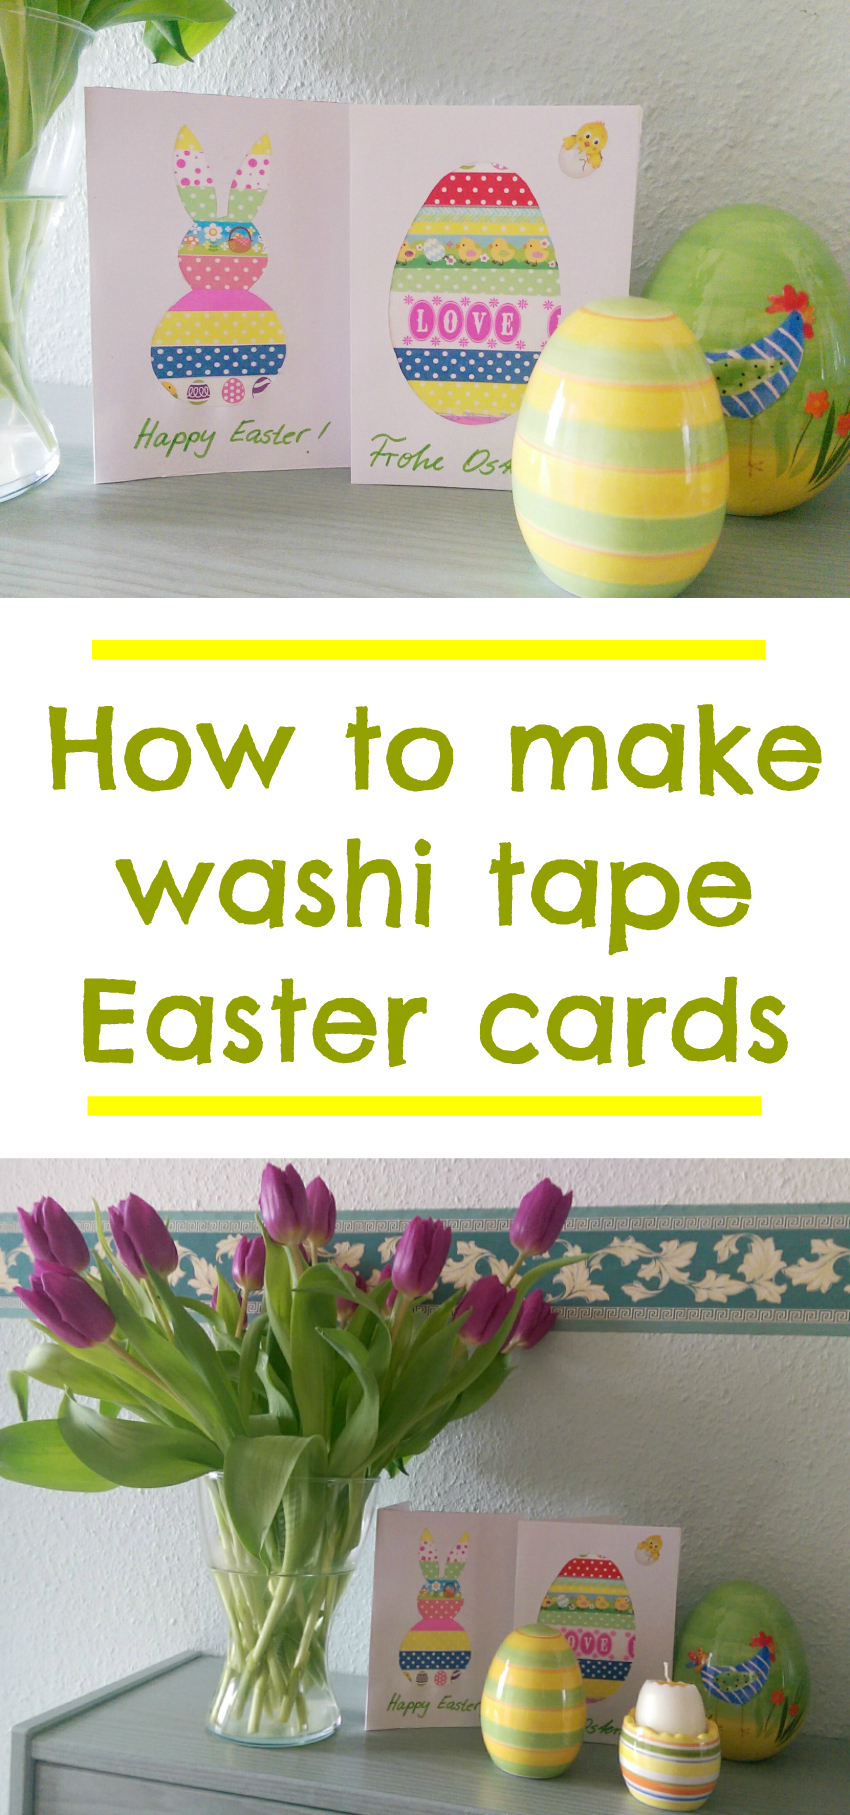 how to make washi tape Easter cards, simple Easter cards, Easter crafts